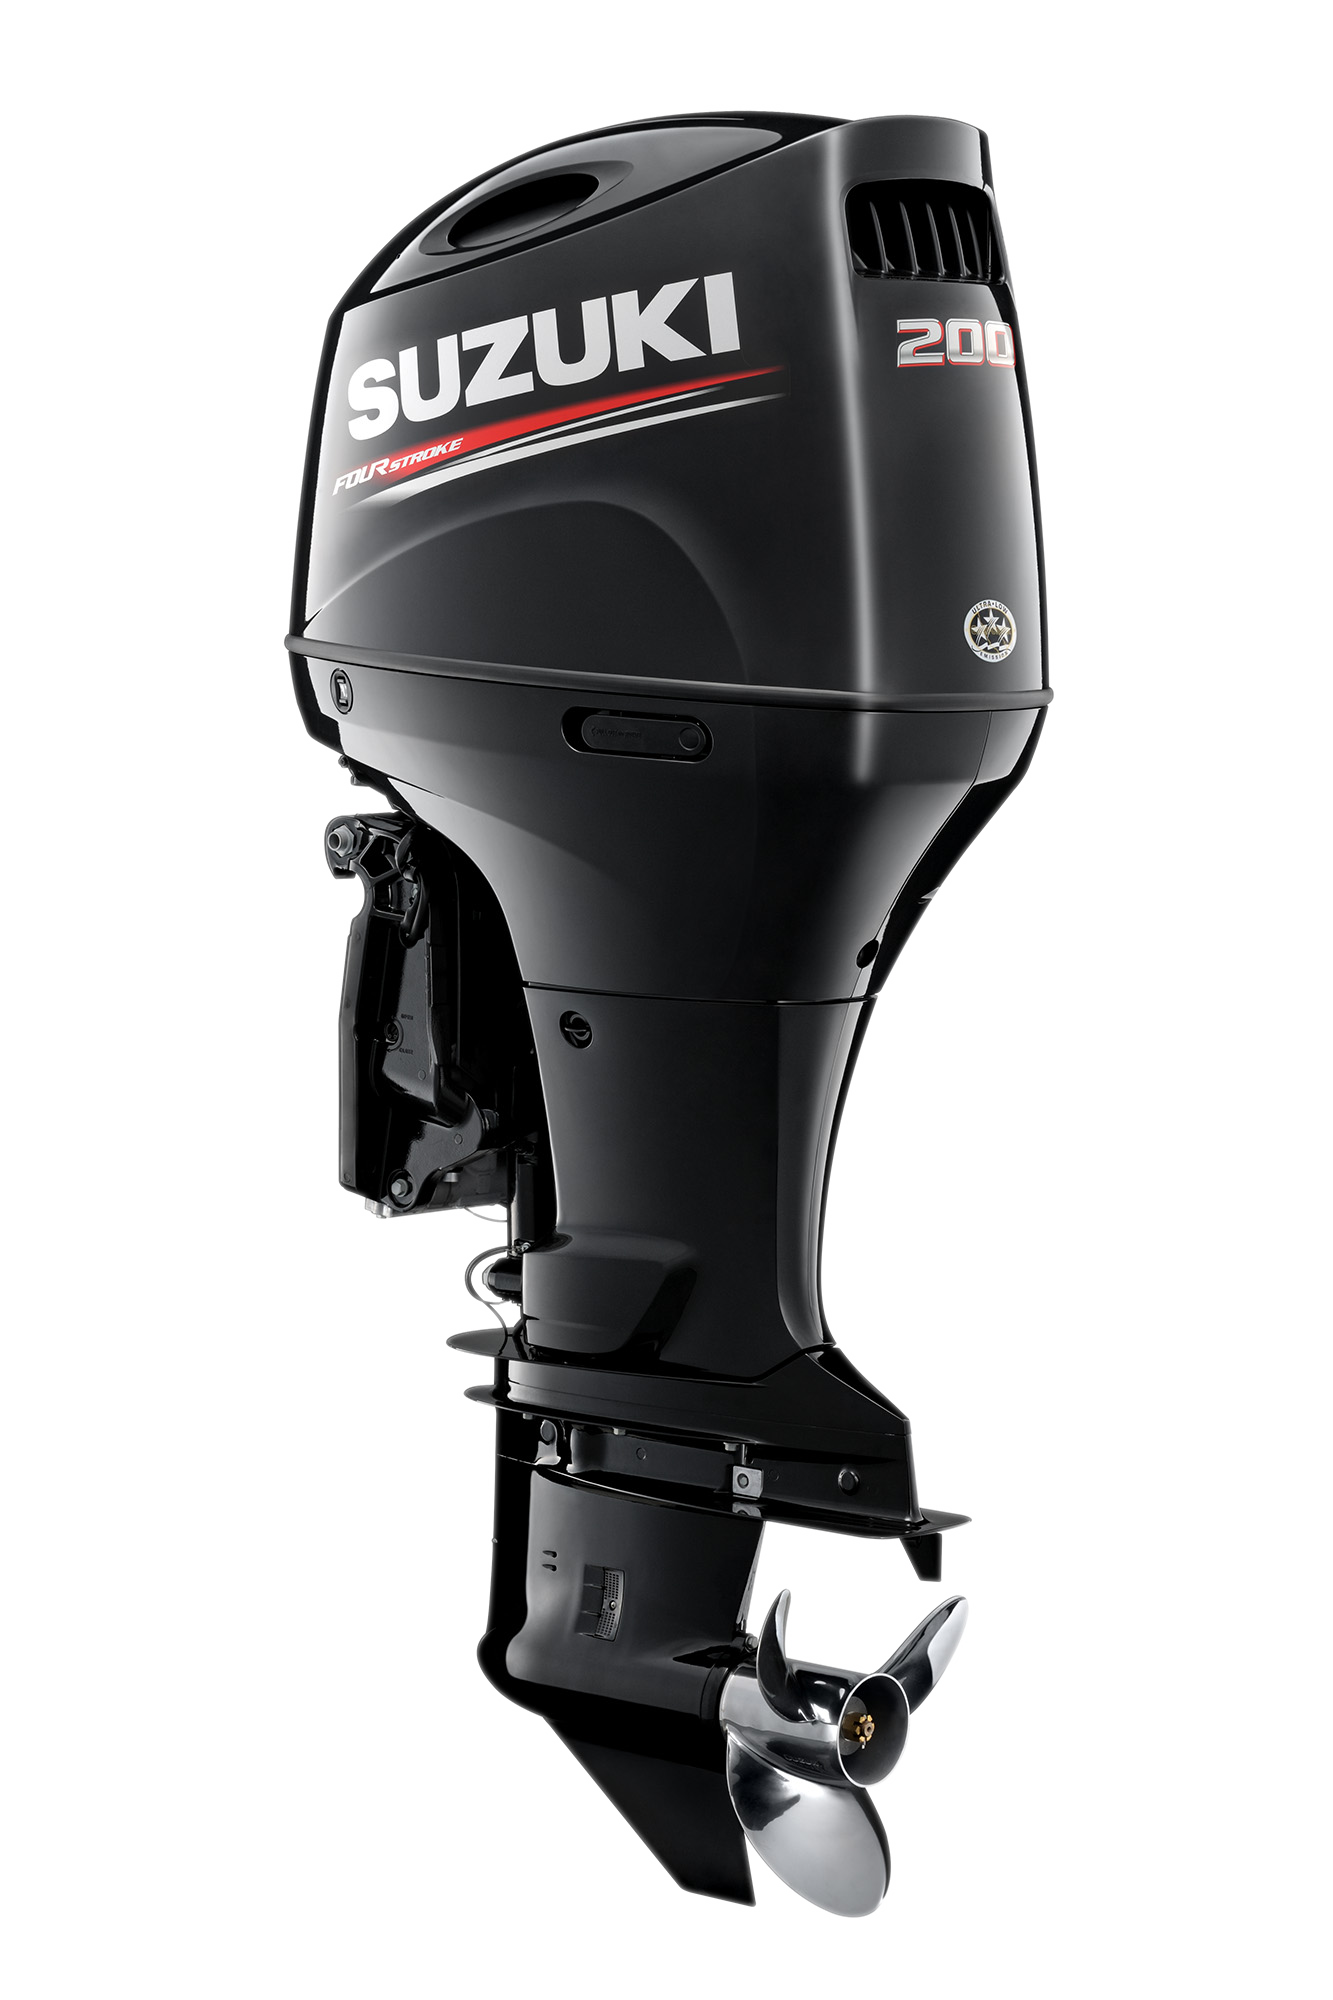 Suzuki Marine - Product Lines - Outboard Motors - Products - DF200A